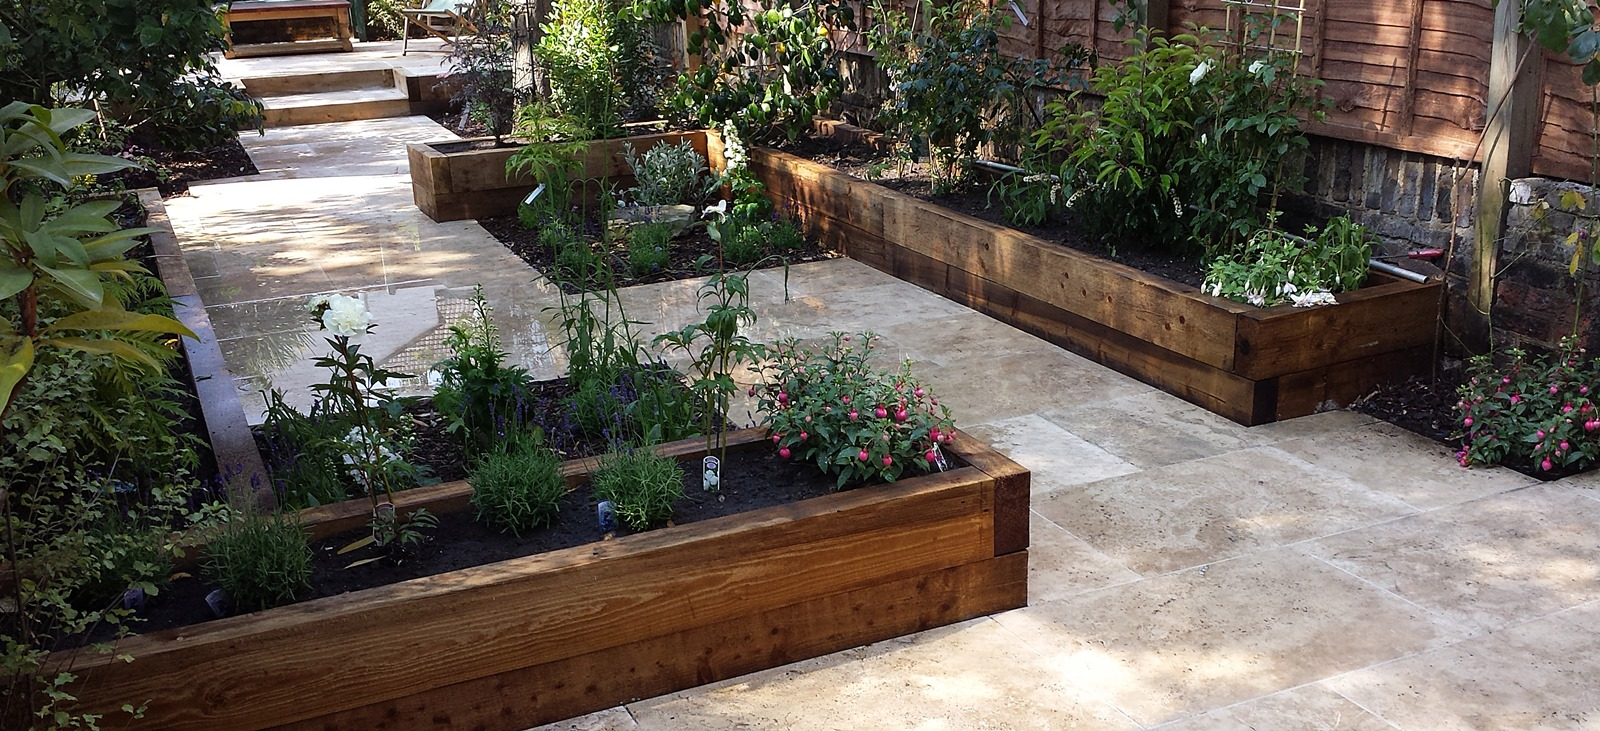 travertine paving patio garden wandsworth london raised beds modern contemporary design low maintenance (6)